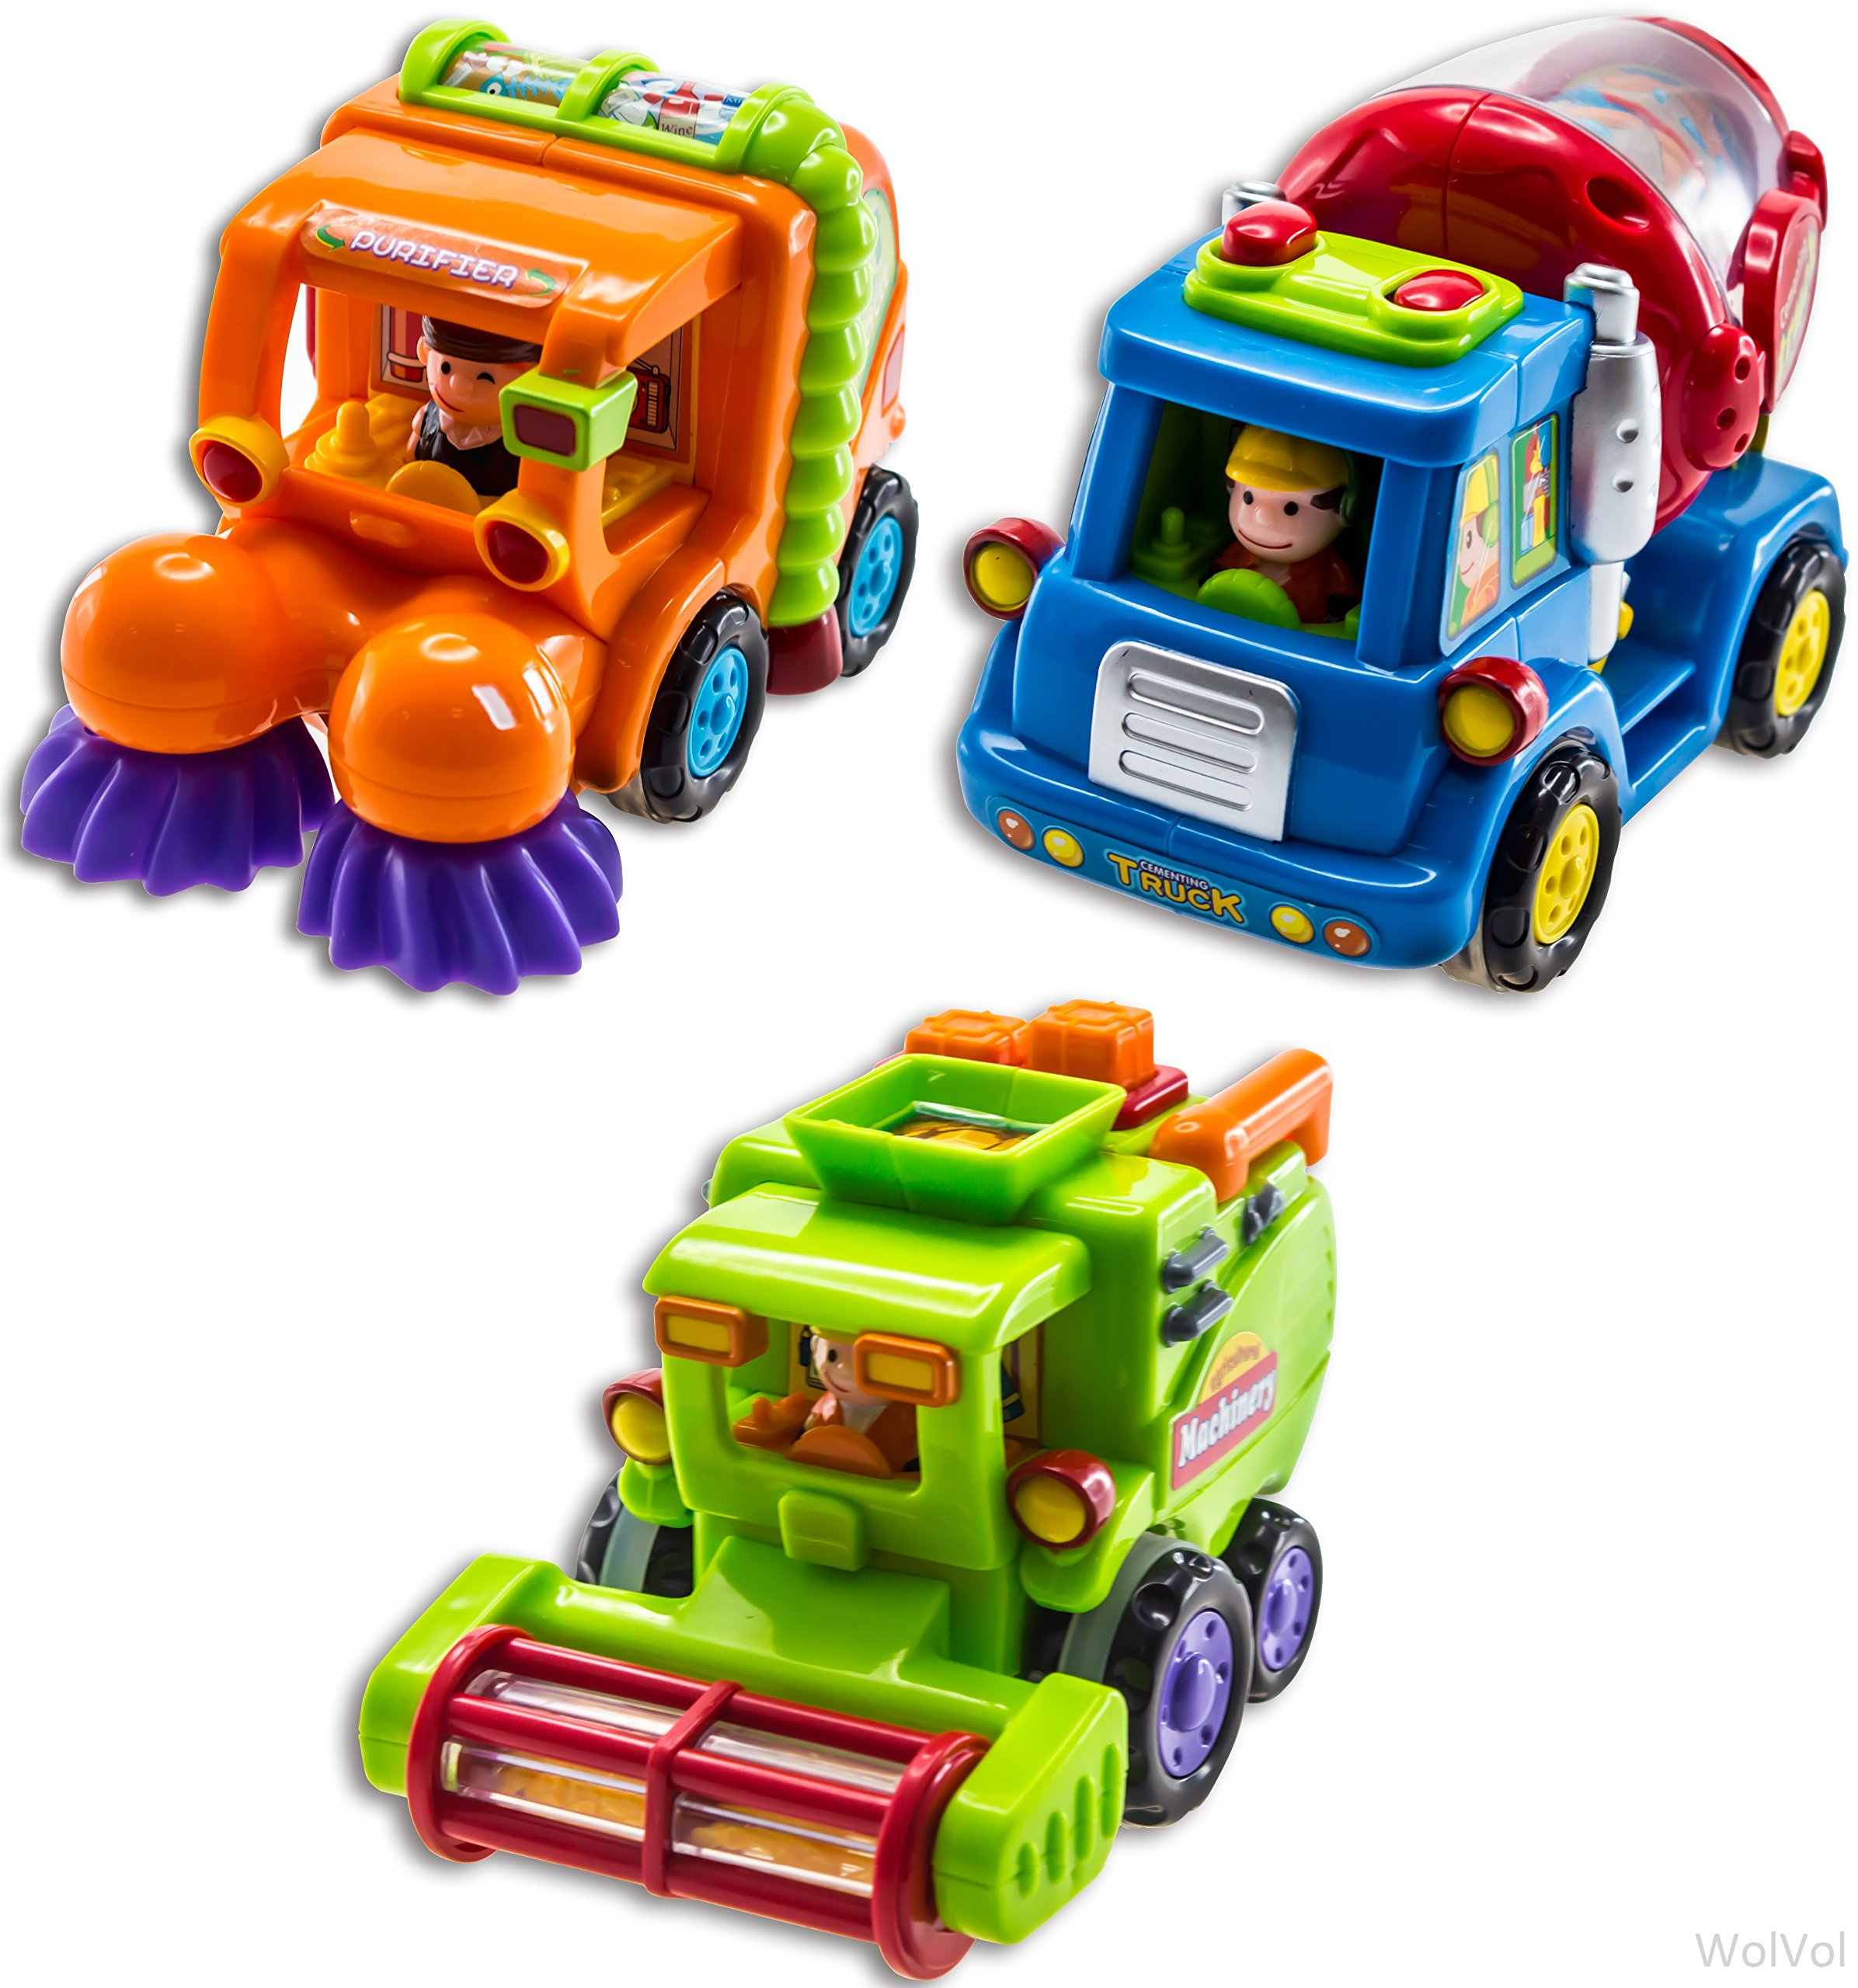 Trucks Boys Toys Age 3 : Product details